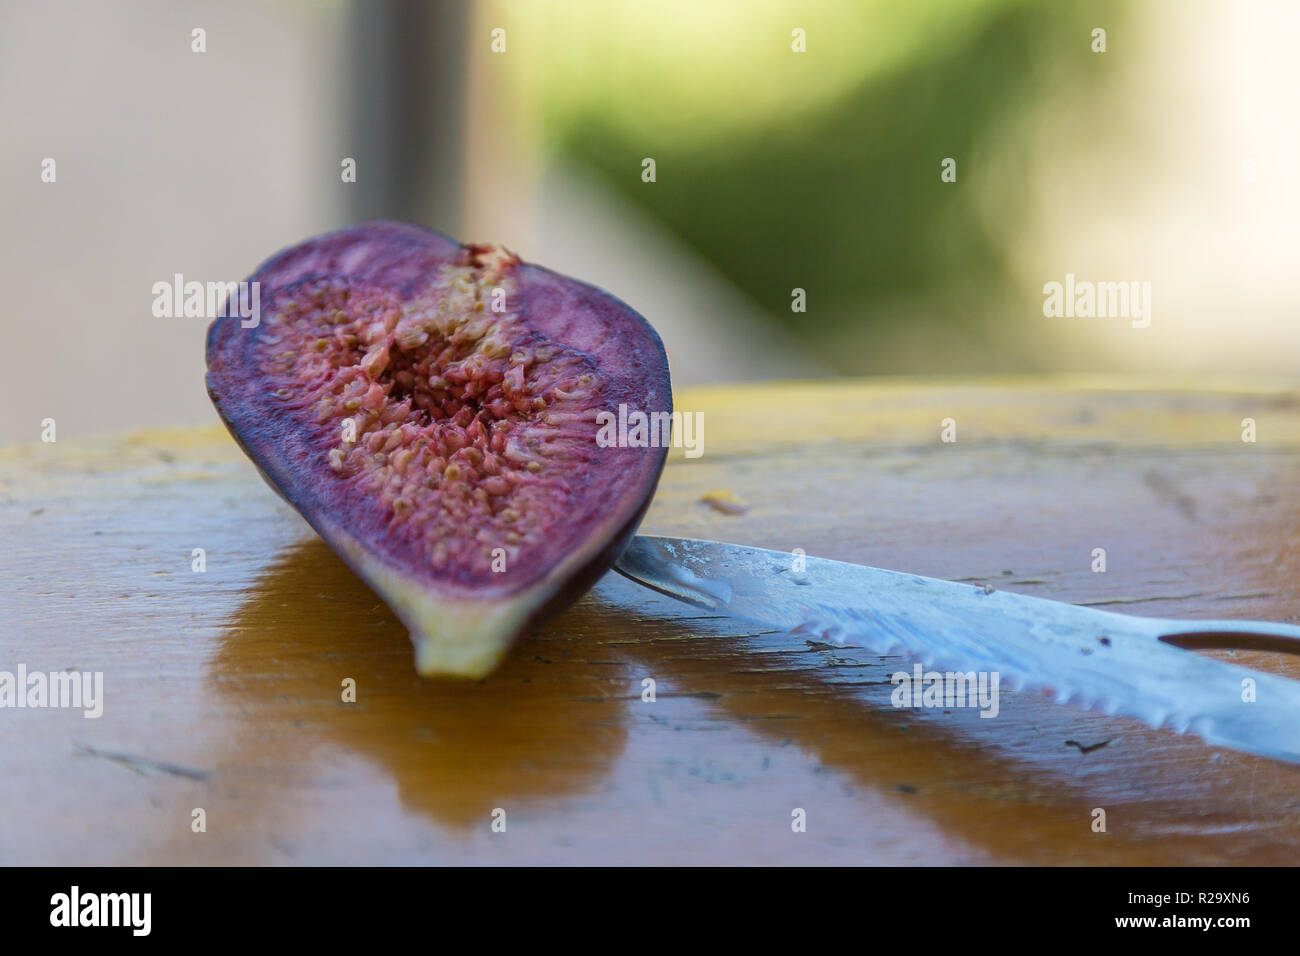 Fresh, violet, cut fig with a knife on a wooden table, Tirana, Albania. - Stock Image